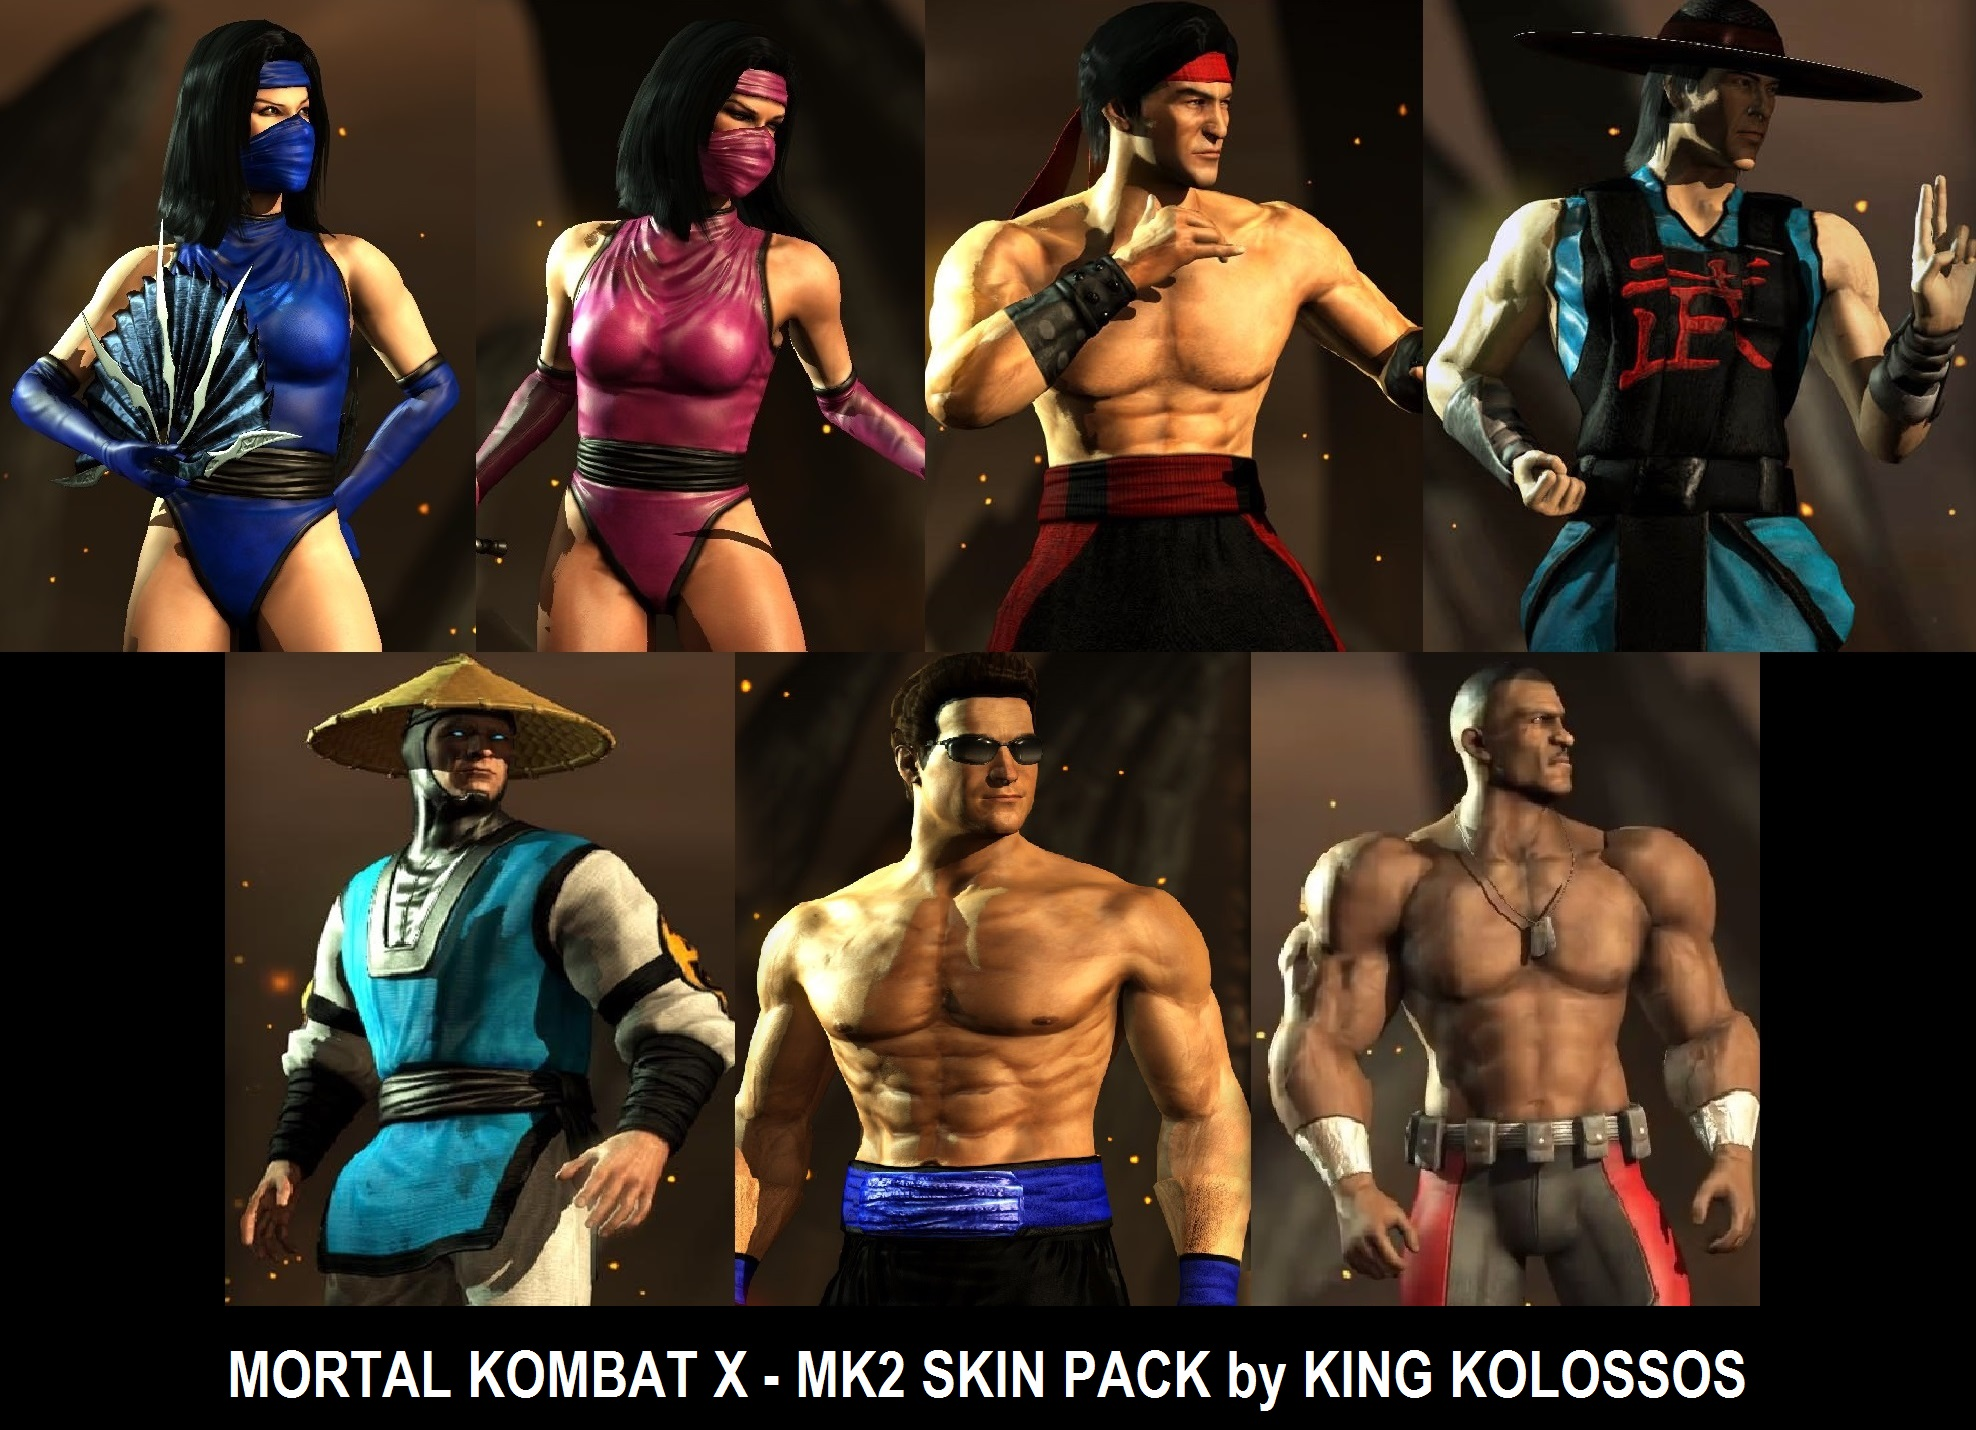 MKX - [ MK2 Skin Pack ] by King Kolossos mod for Mortal